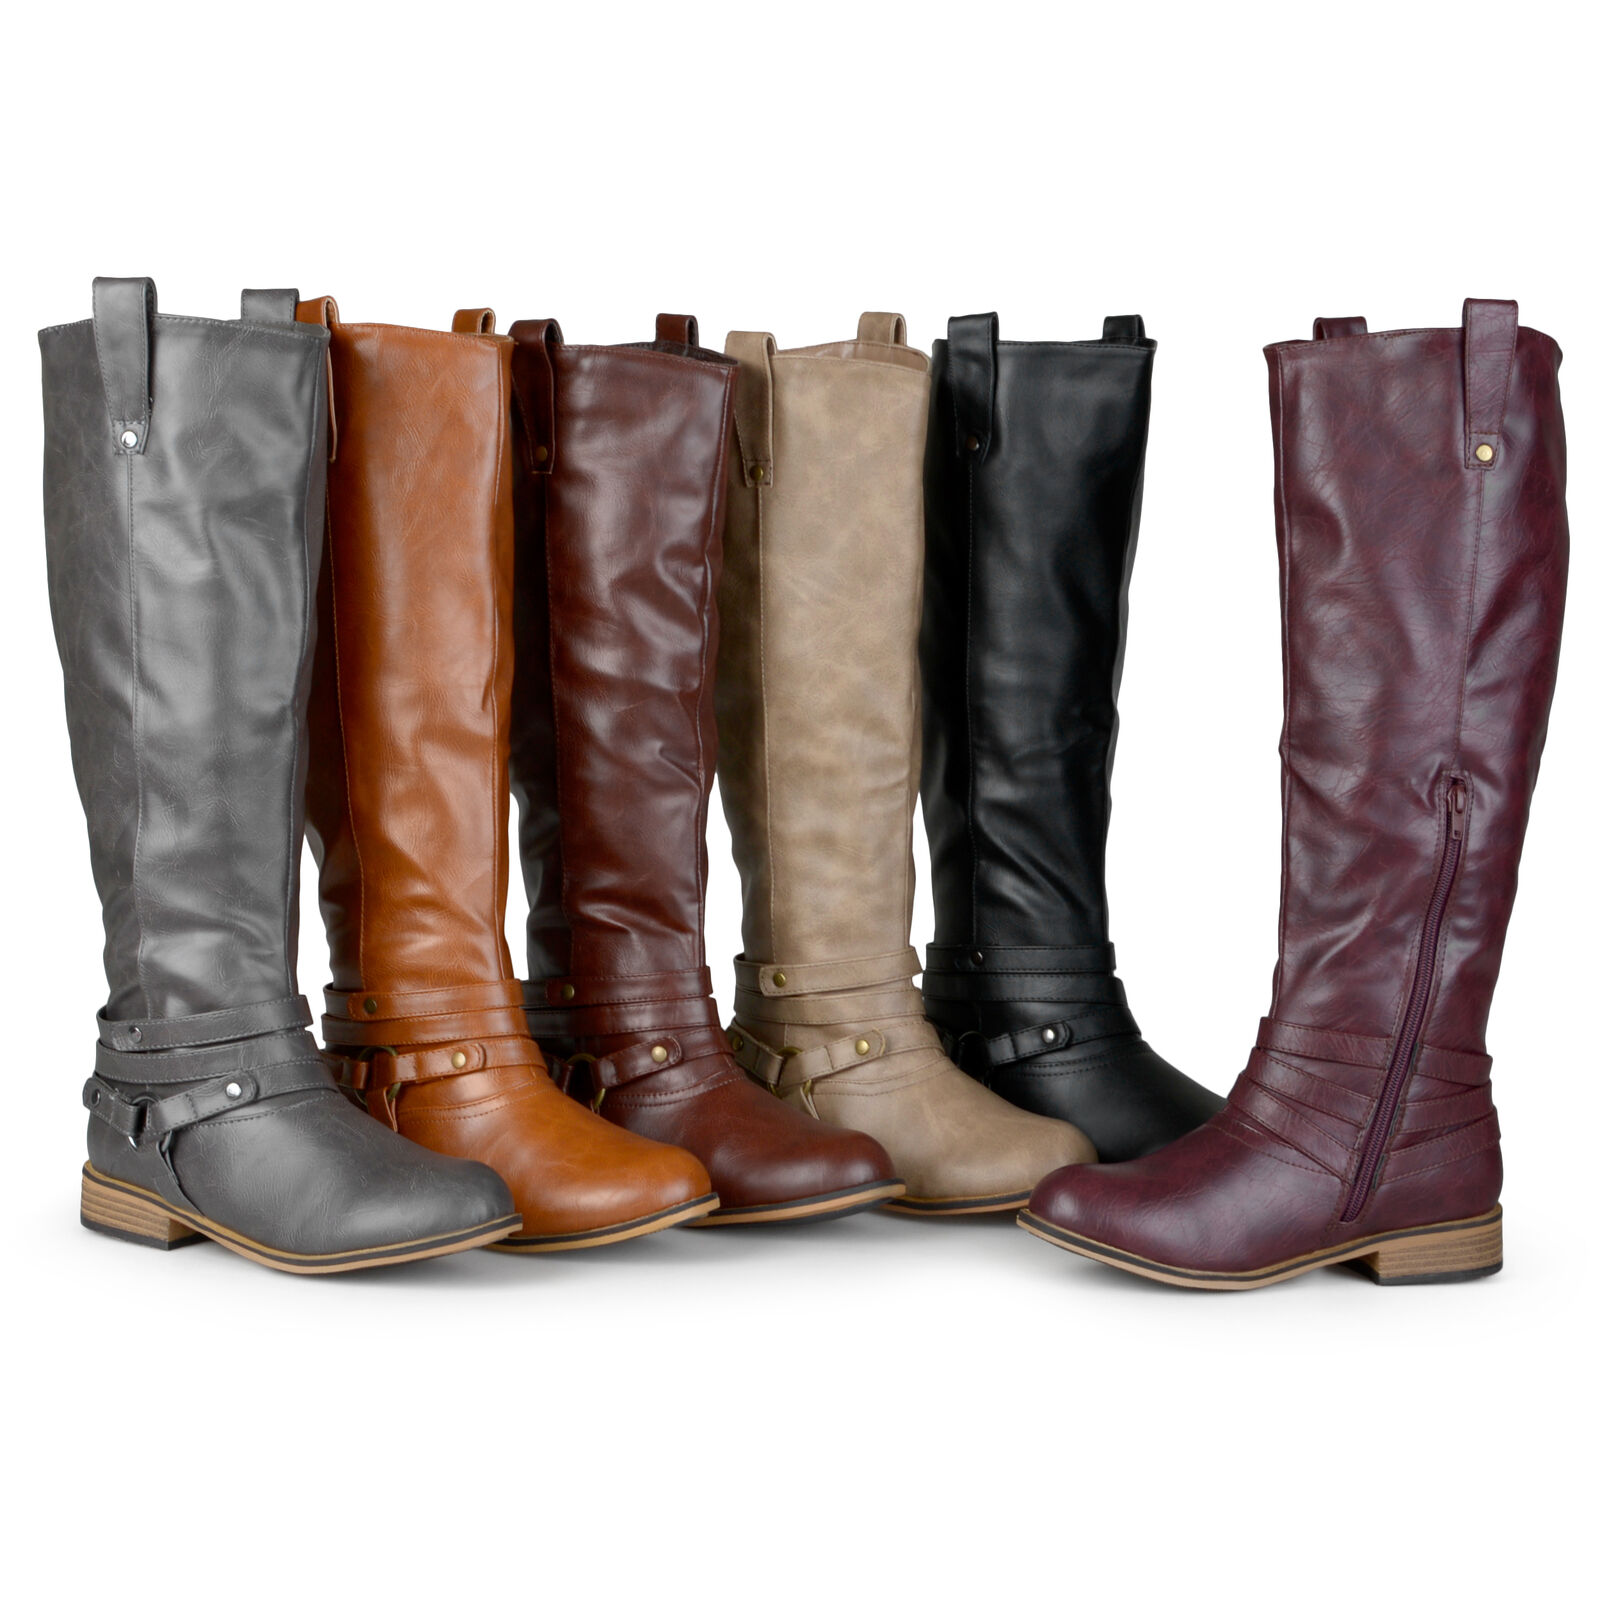 Boots - Journee Collection Womens Wide and Extra-Wide Calf Riding Boots